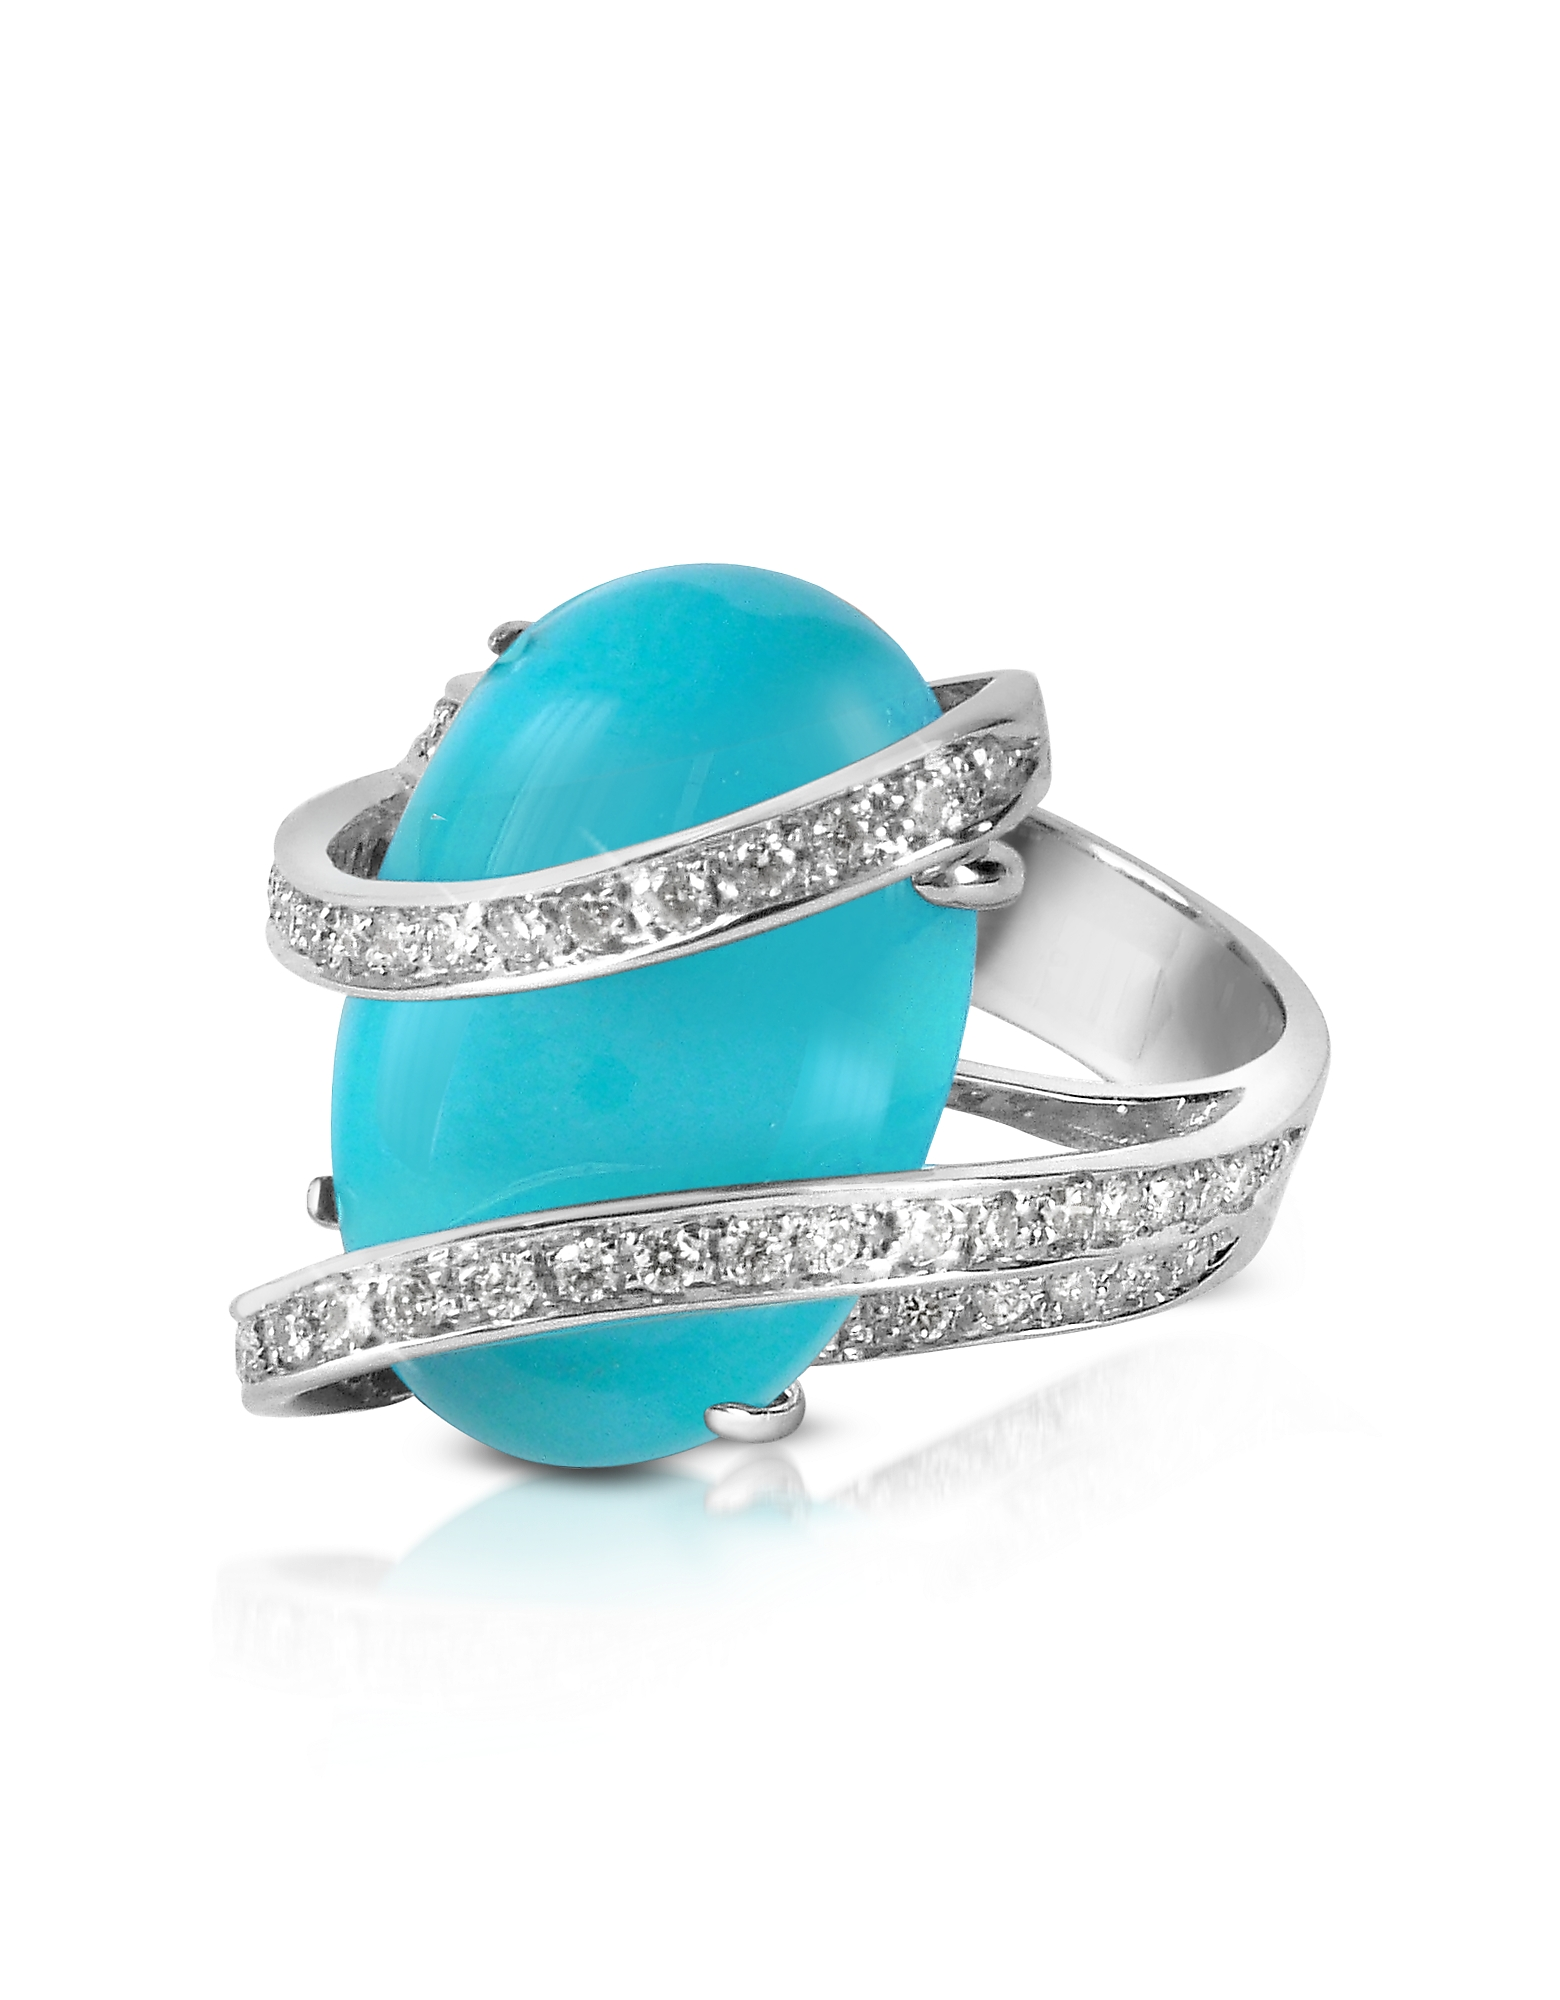 Del Gatto Rings, Turquoise Diamond Channel 18K Gold Ring